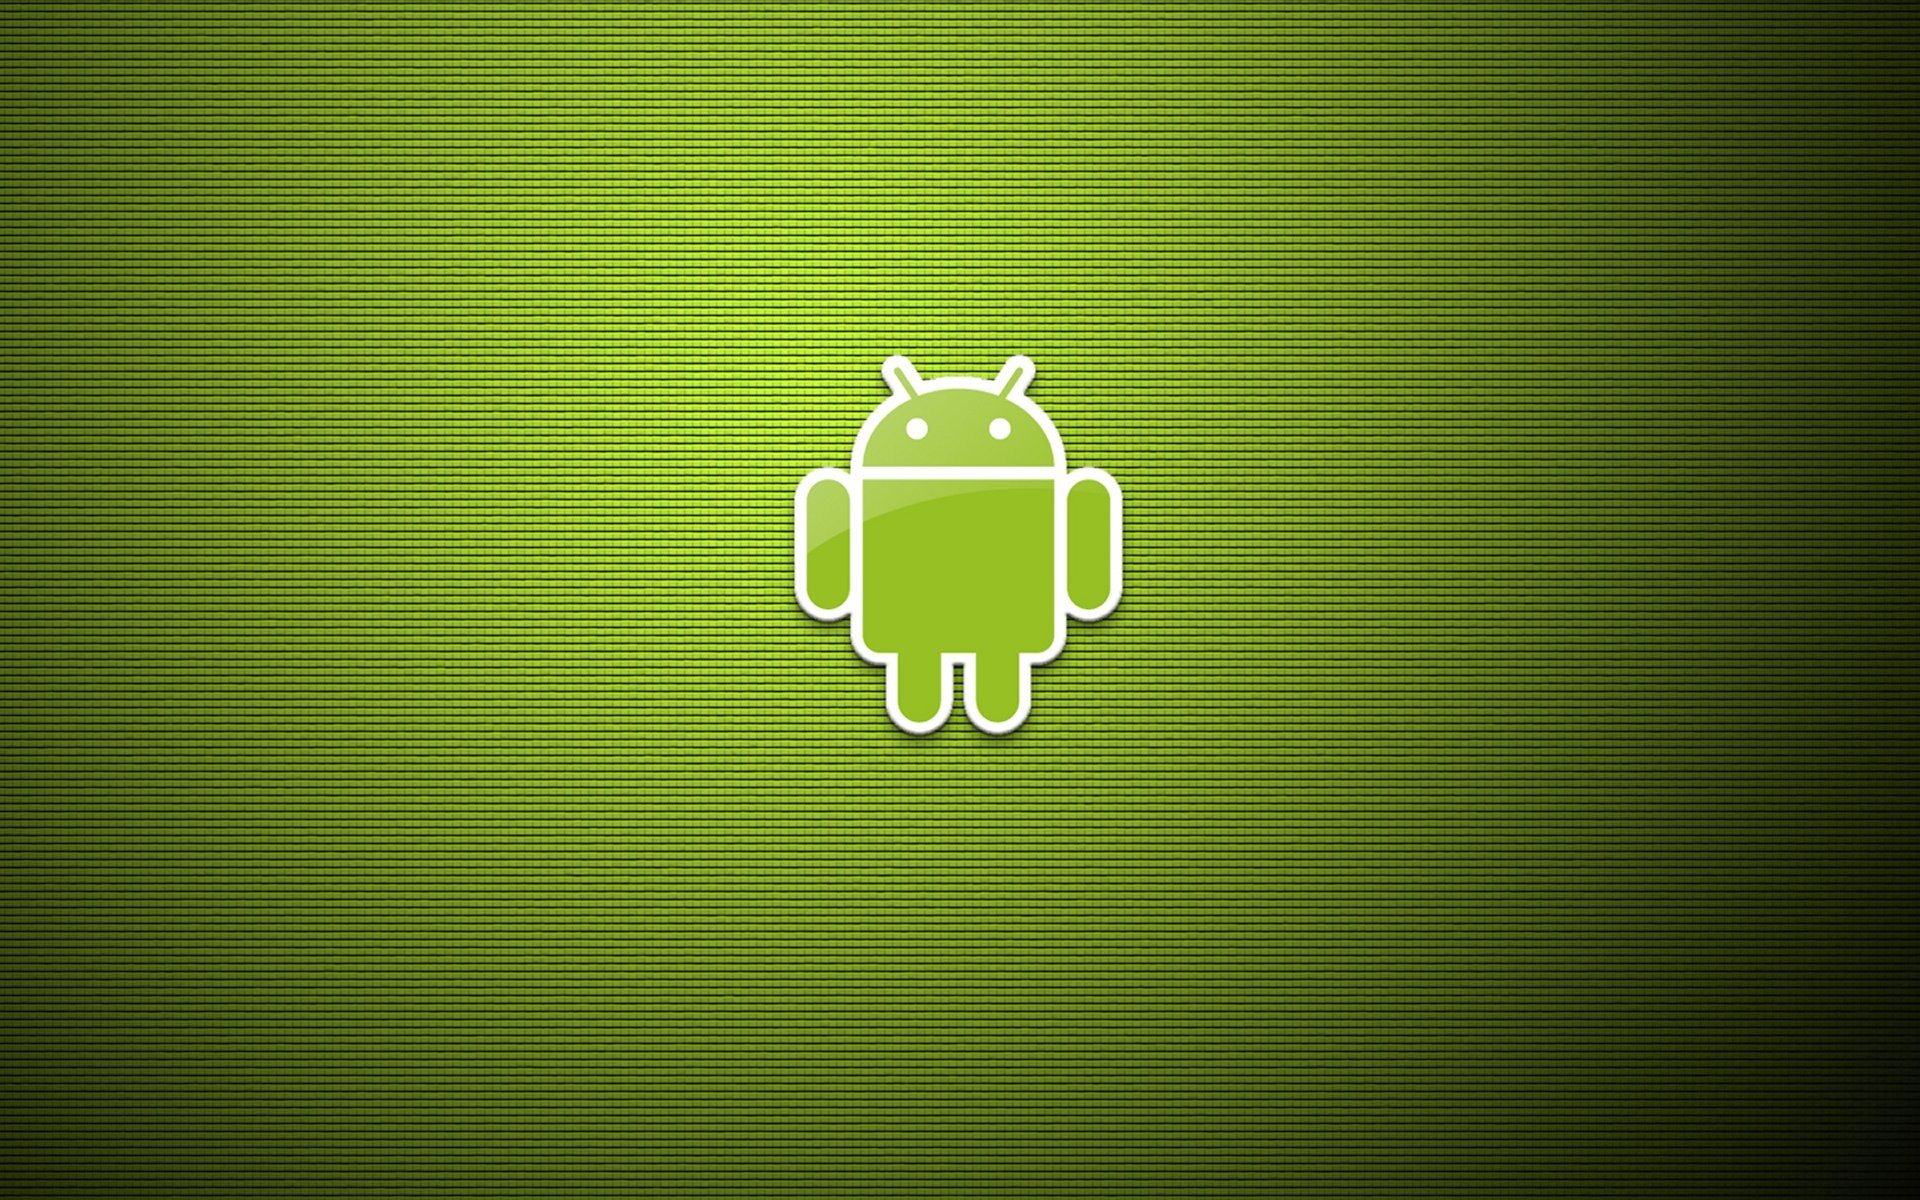 Wallpapers and Screensavers for Tablets (64+ images)